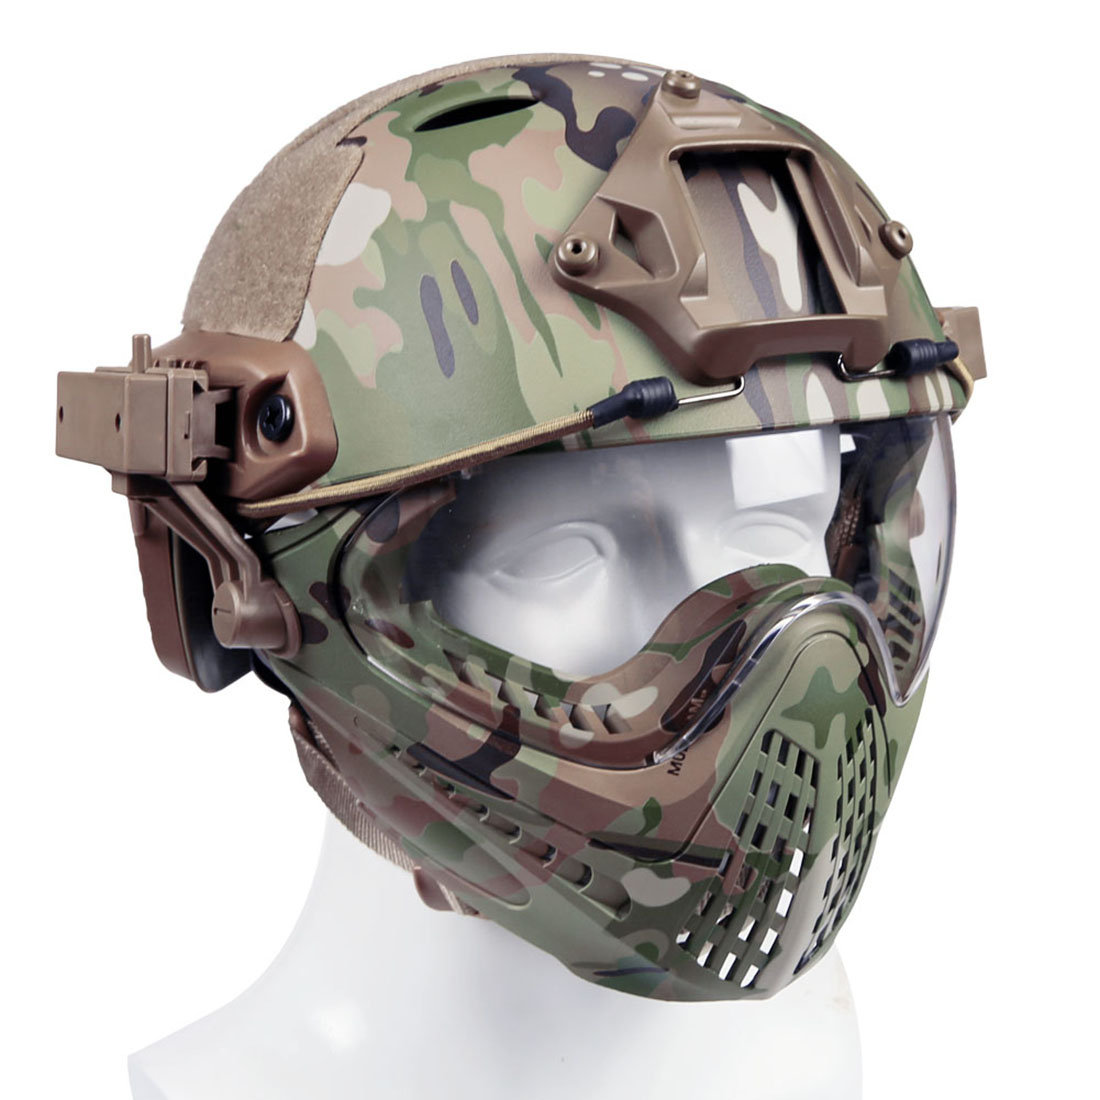 WST Navigator Tactical Camouflage Protective Helmet Durable Hunting Tactical Head Protector For Airsoft Wargame Equipment